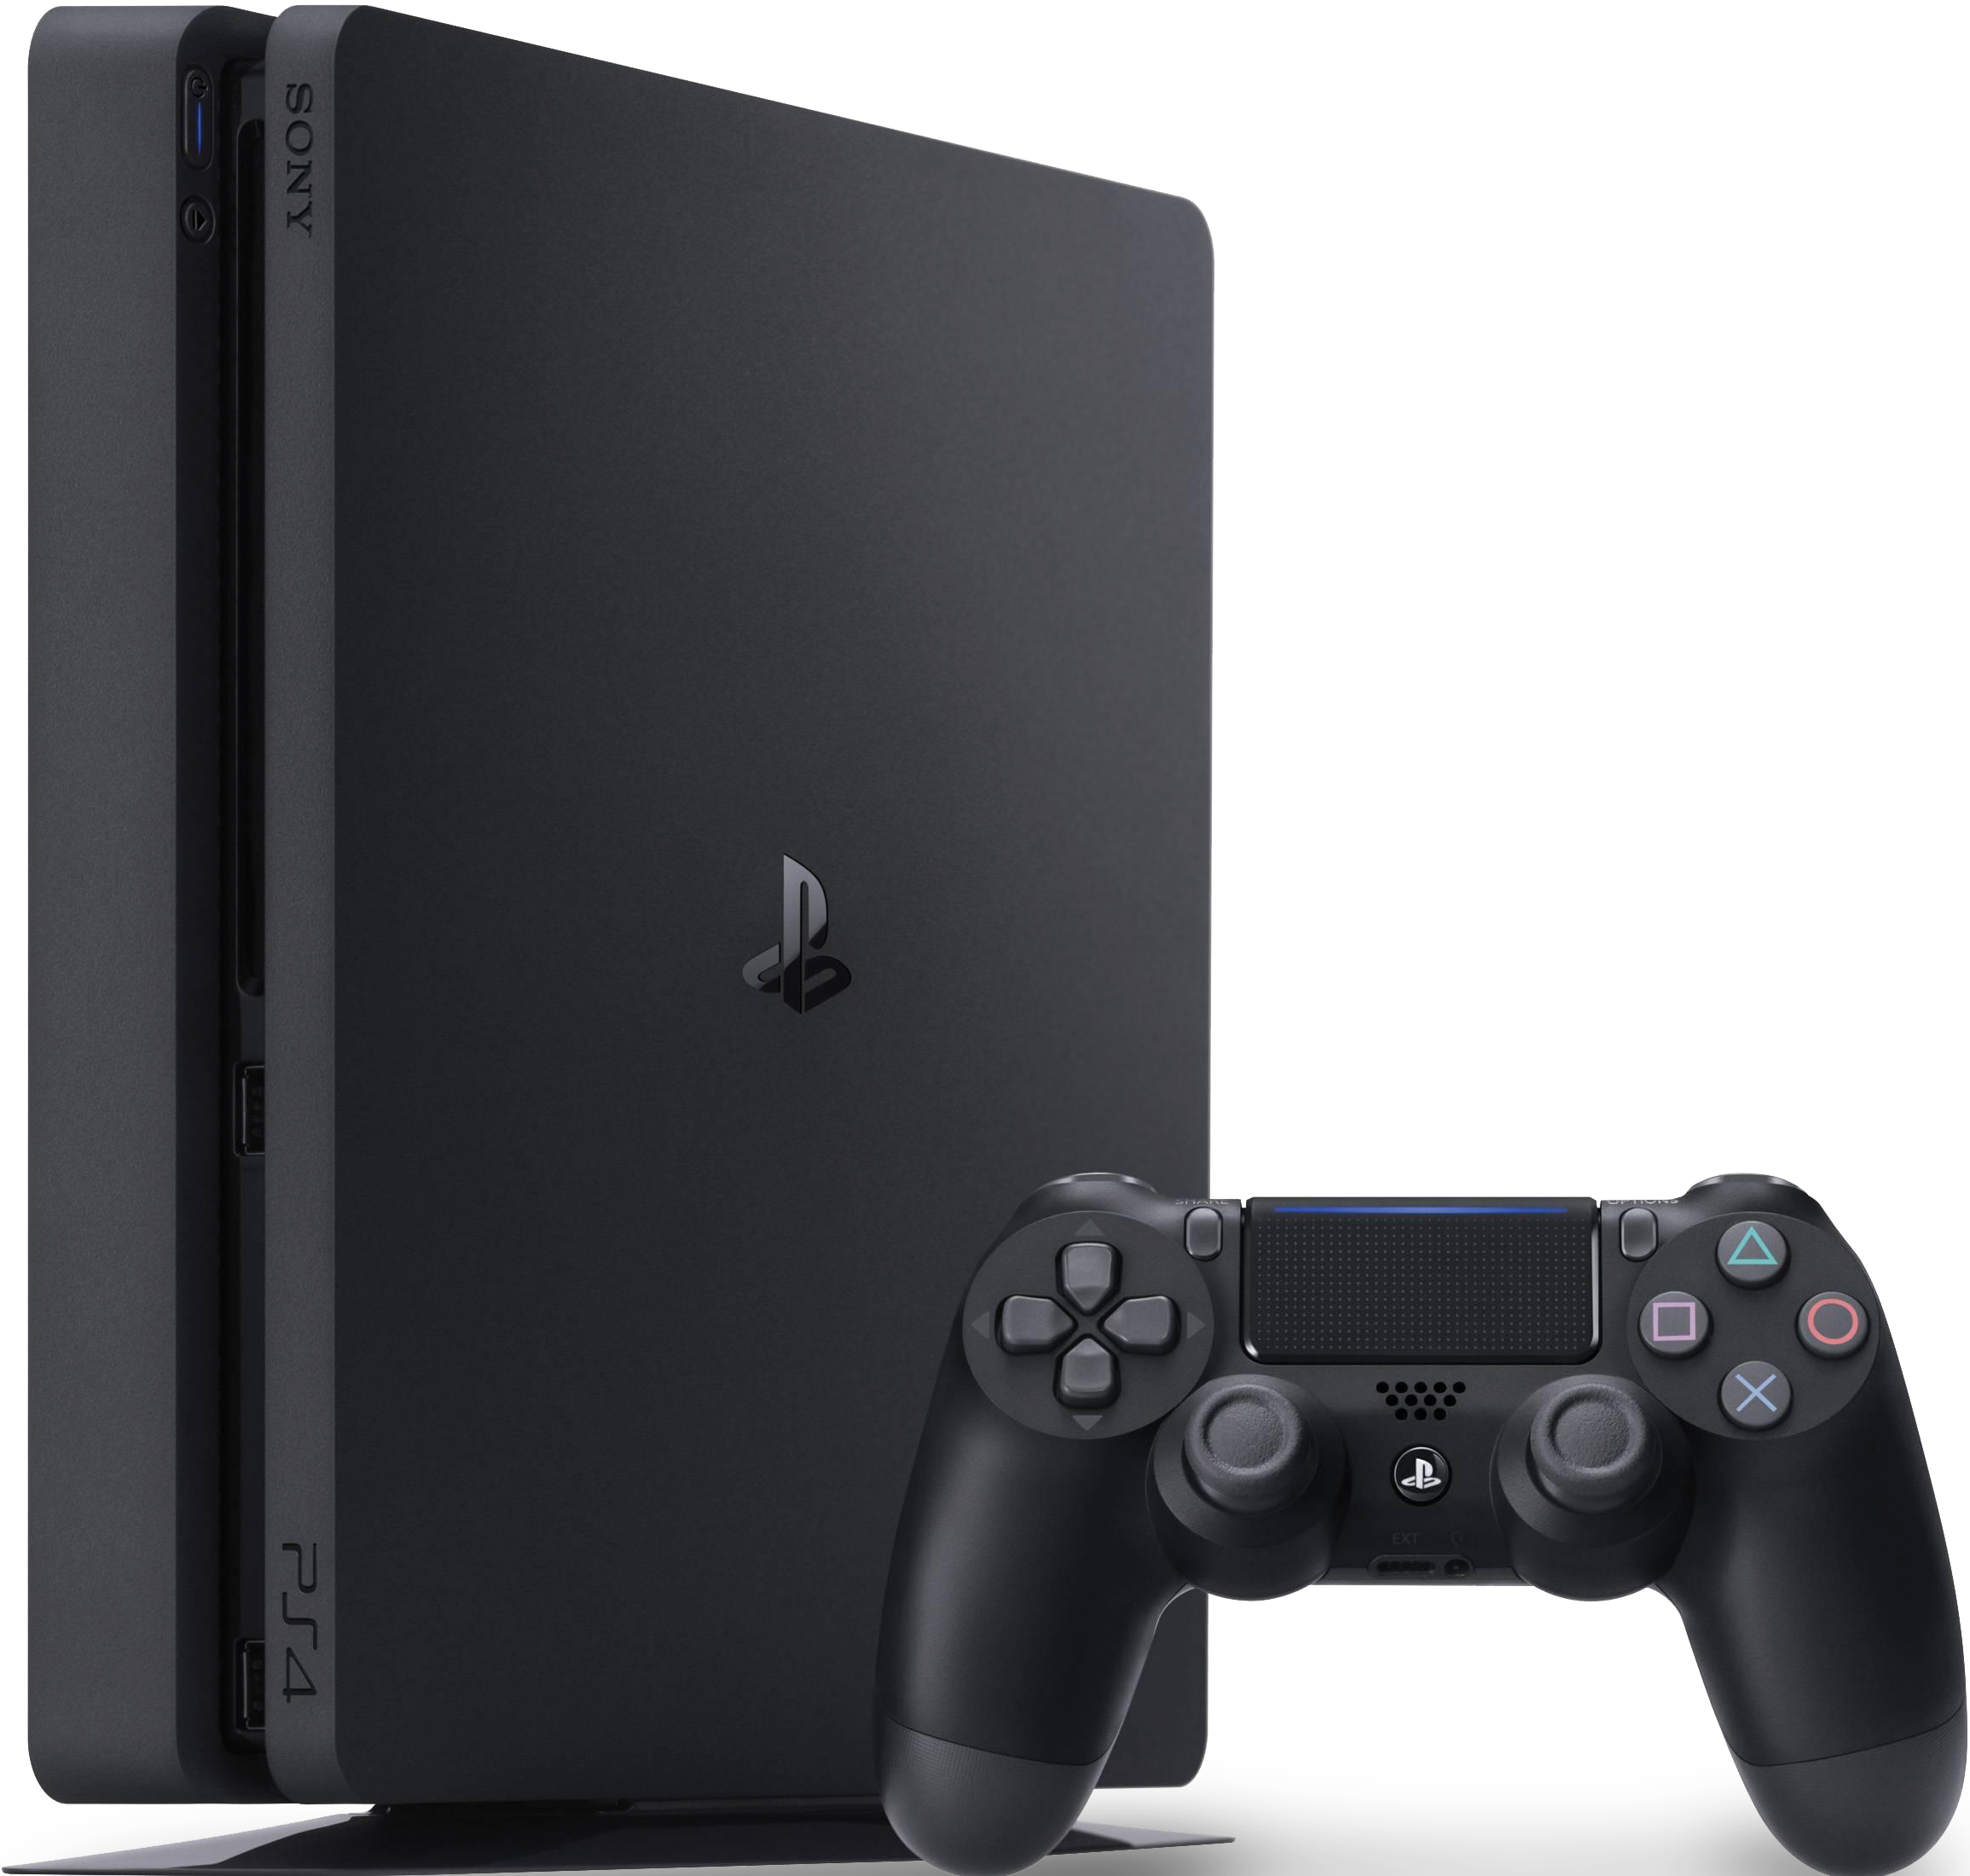 sony-playstation-4-slim-500gb-ps4500gbslim-novi